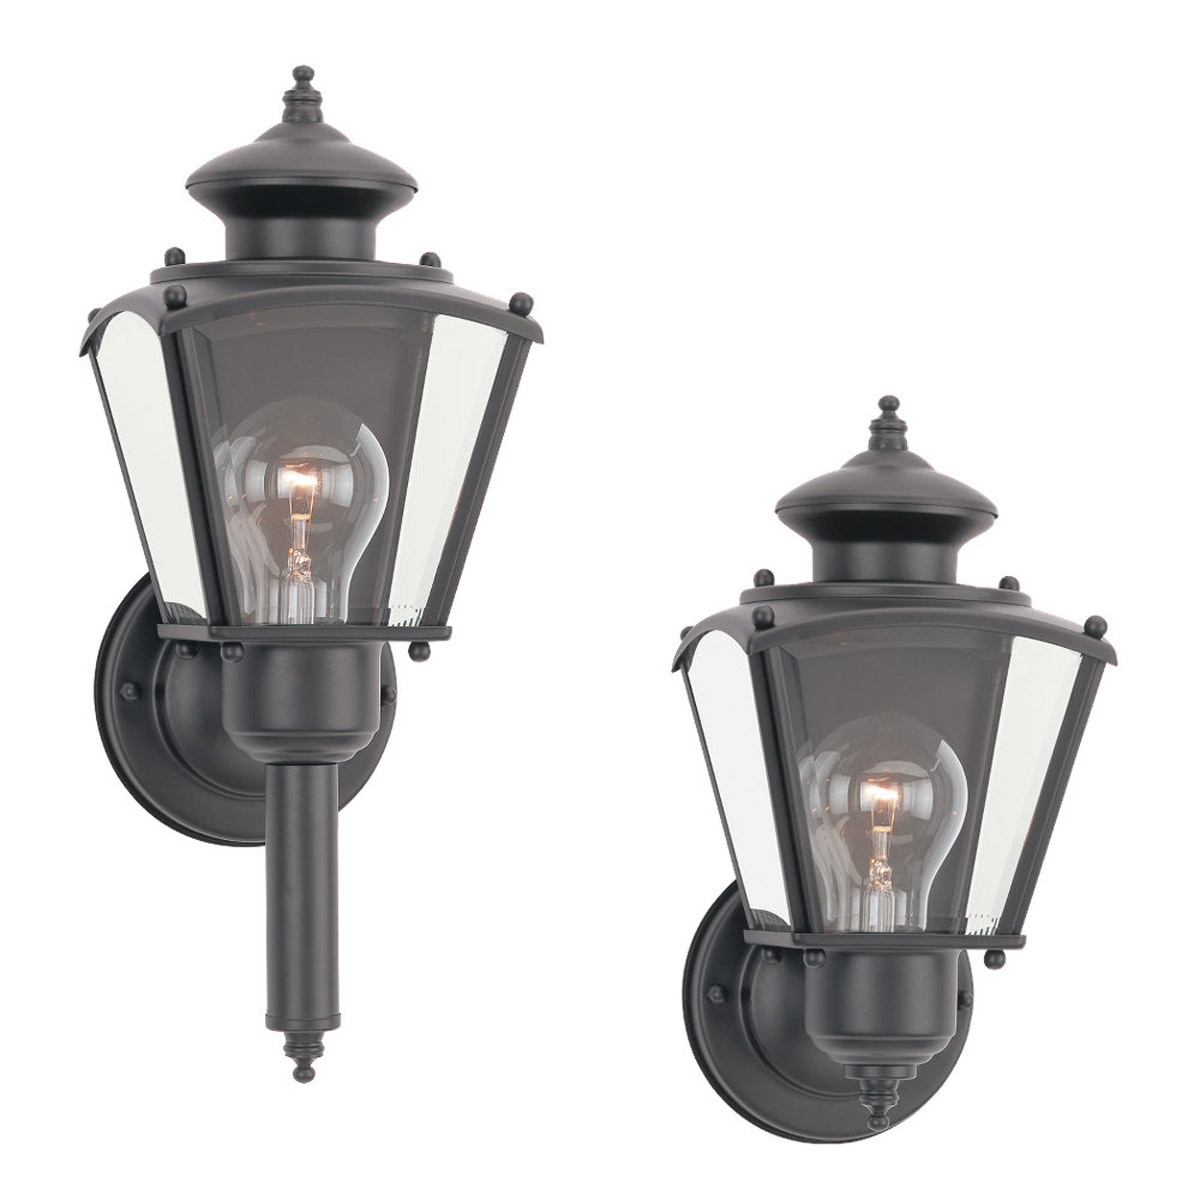 Sea Gull Lighting New Castle 1 Light Outdoor Wall Lantern in Black 8503-12